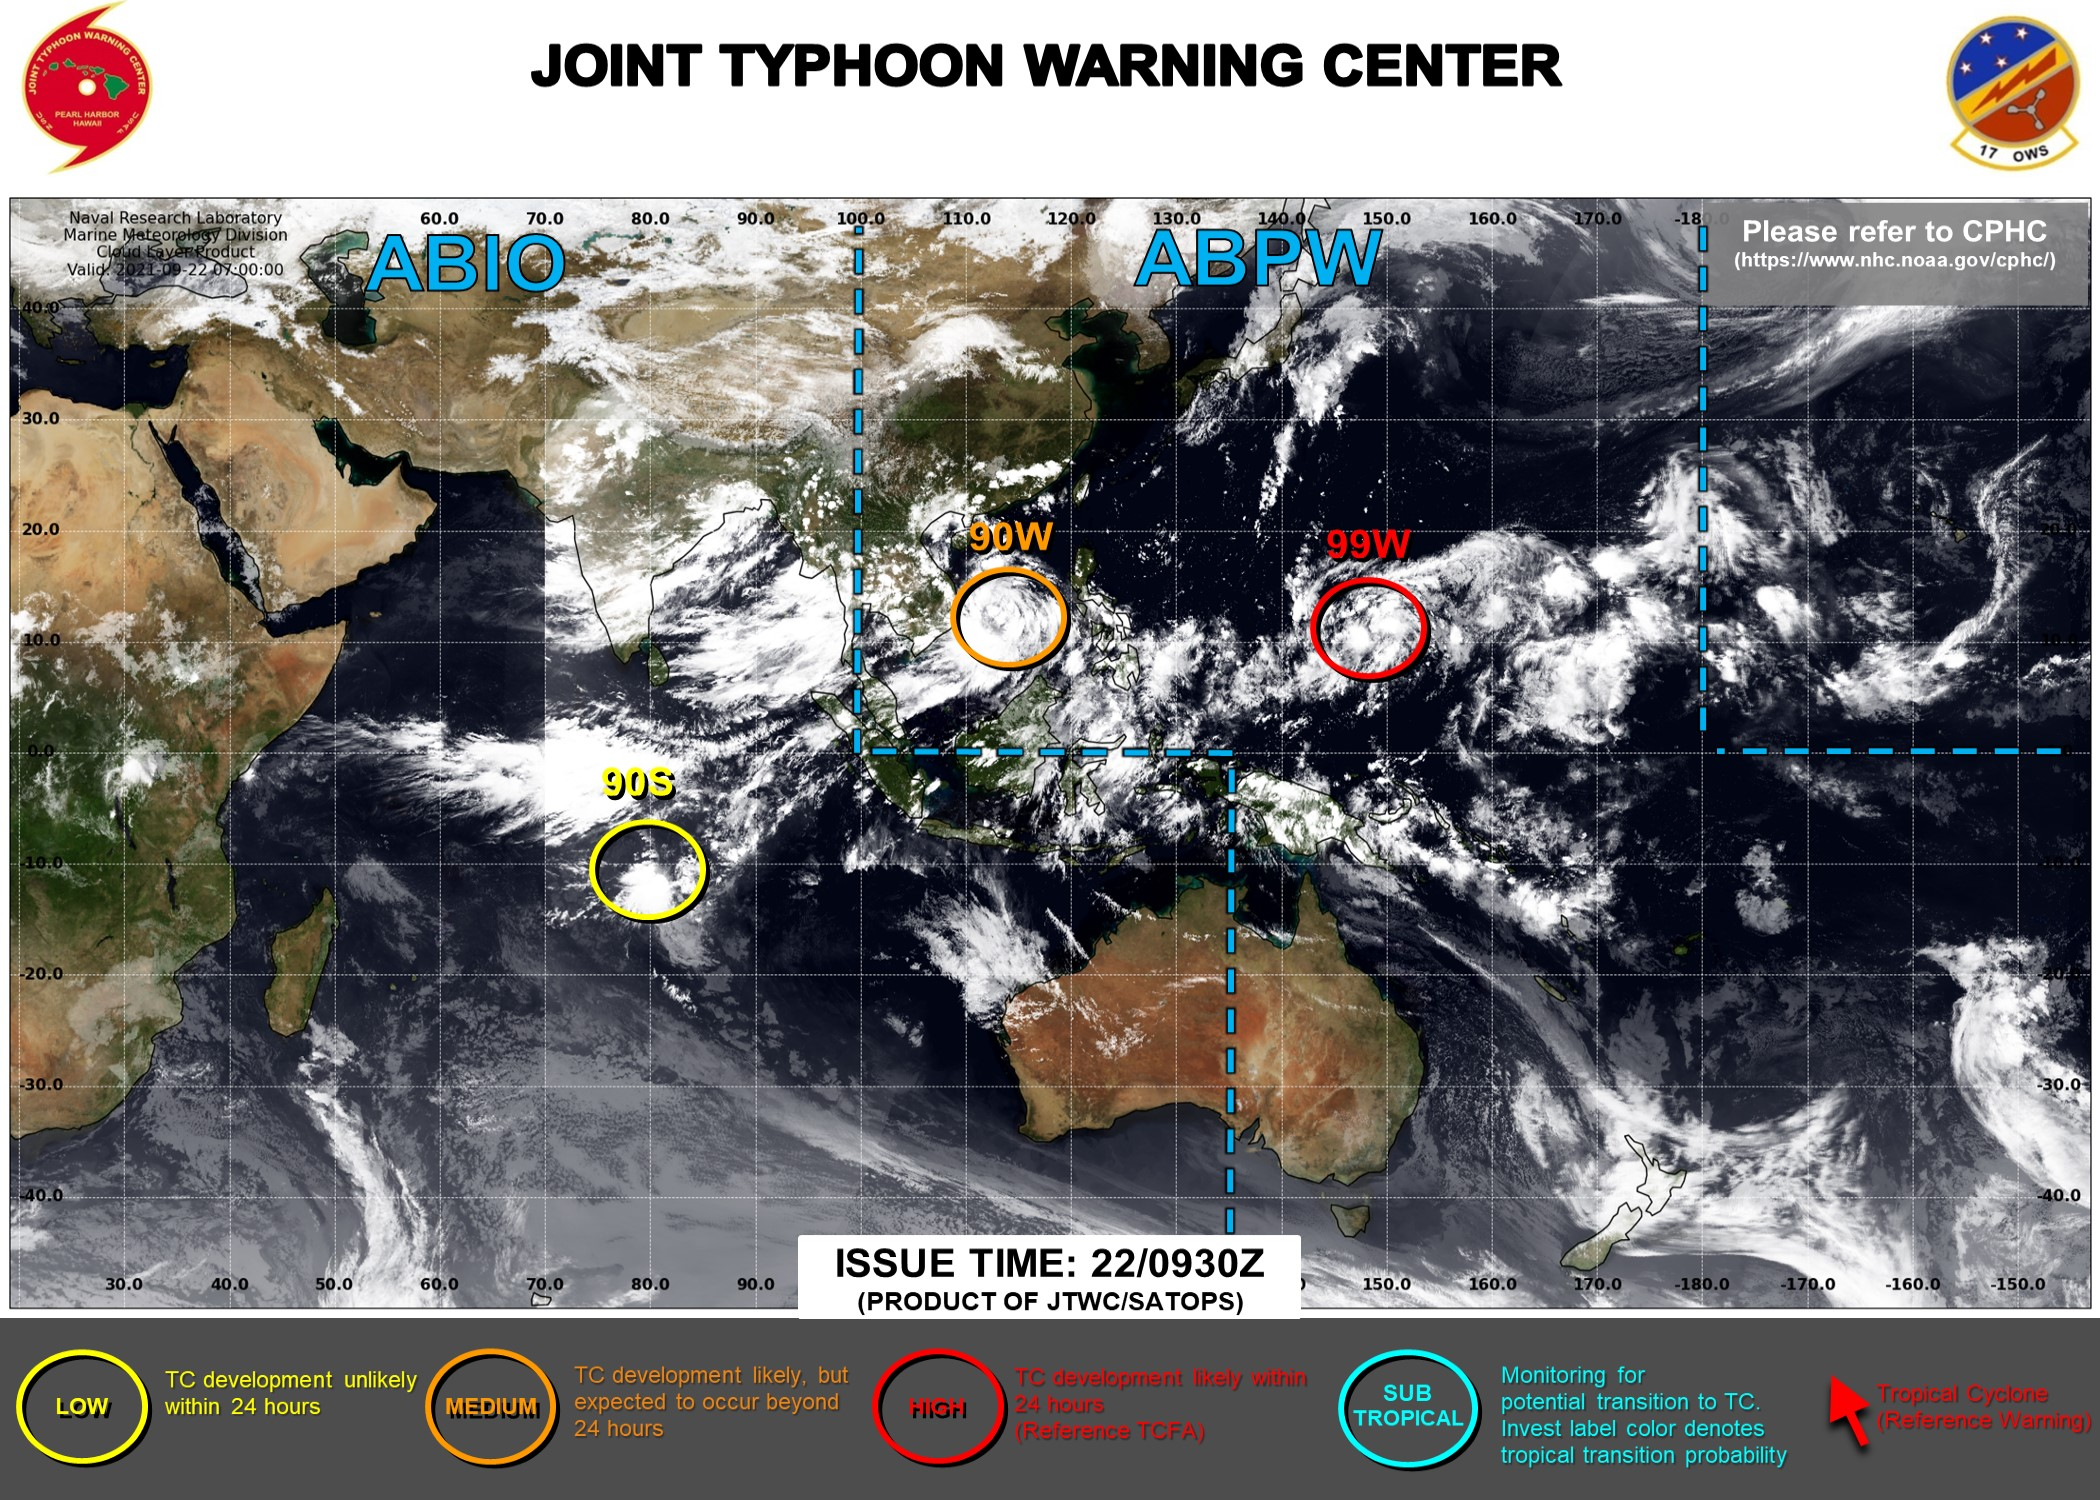 Western Pacific: 99W is High, 90W up-graded to Medium//South Indian: 90S down-graded to Low//Atlantic: still active with 16L,17L and 98L, 22/09utc updates